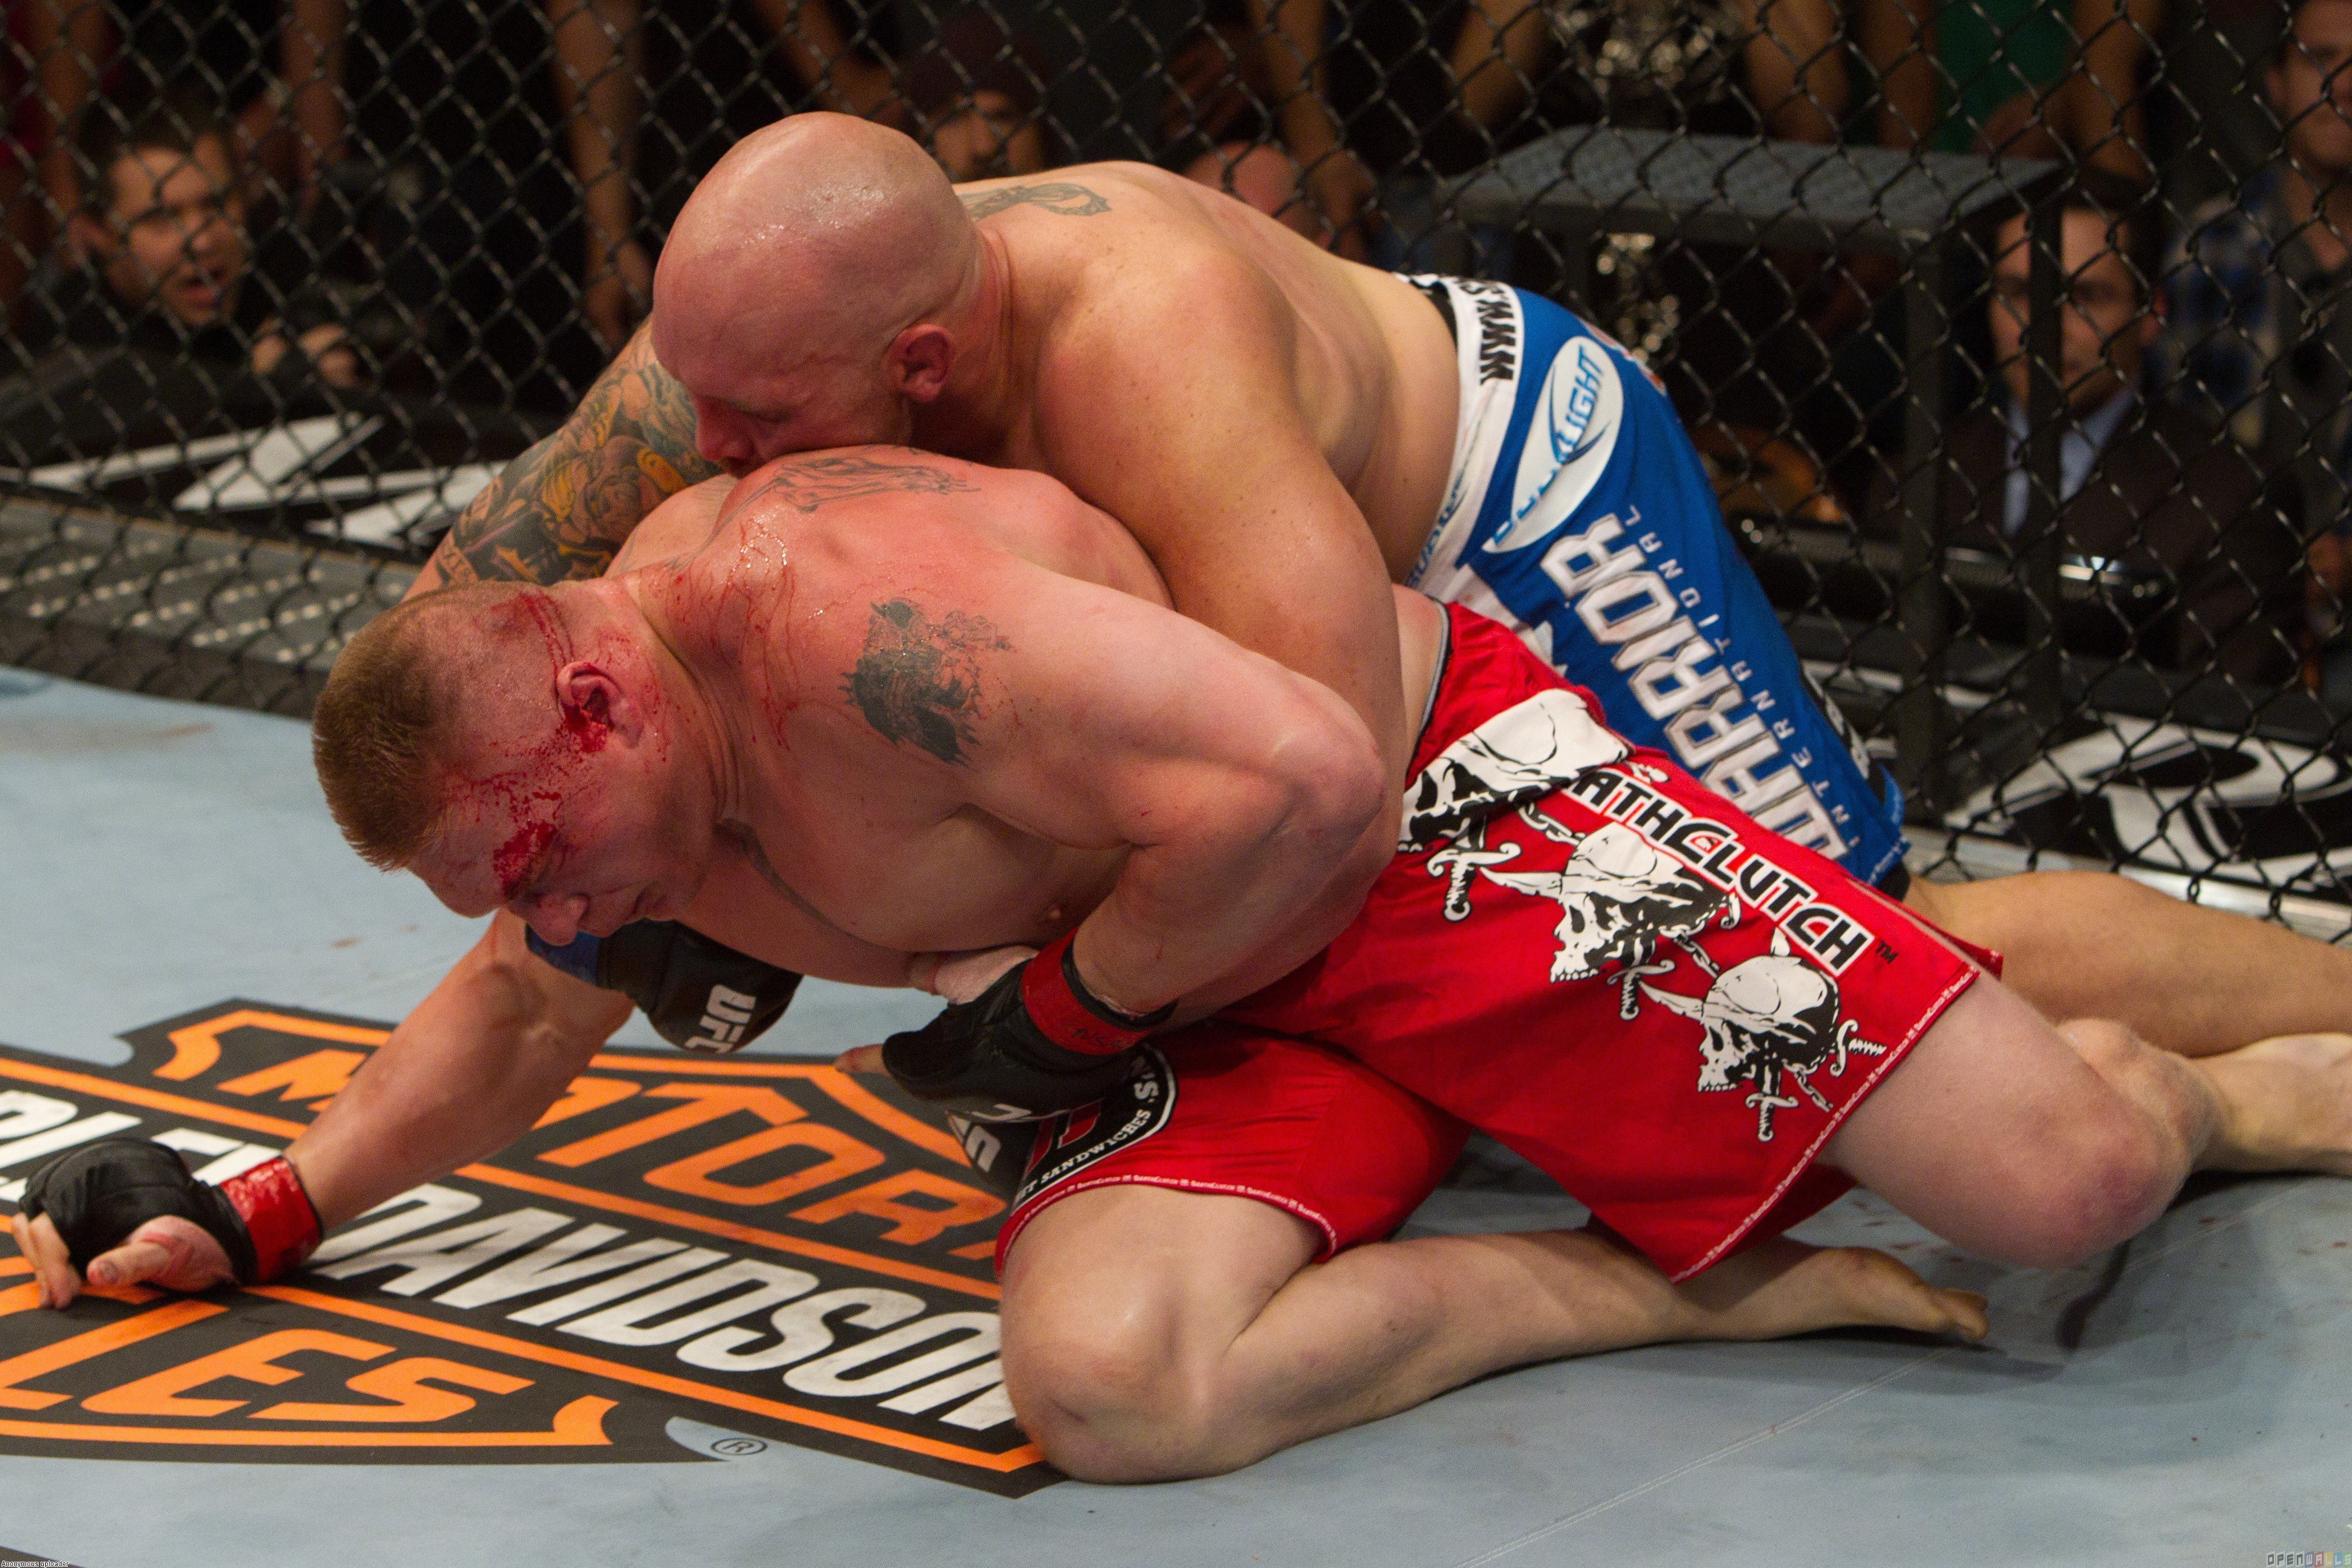 Ufc 116   brock lesnar vs shane carwin wallpaper 14816   Open Walls 4125x2750